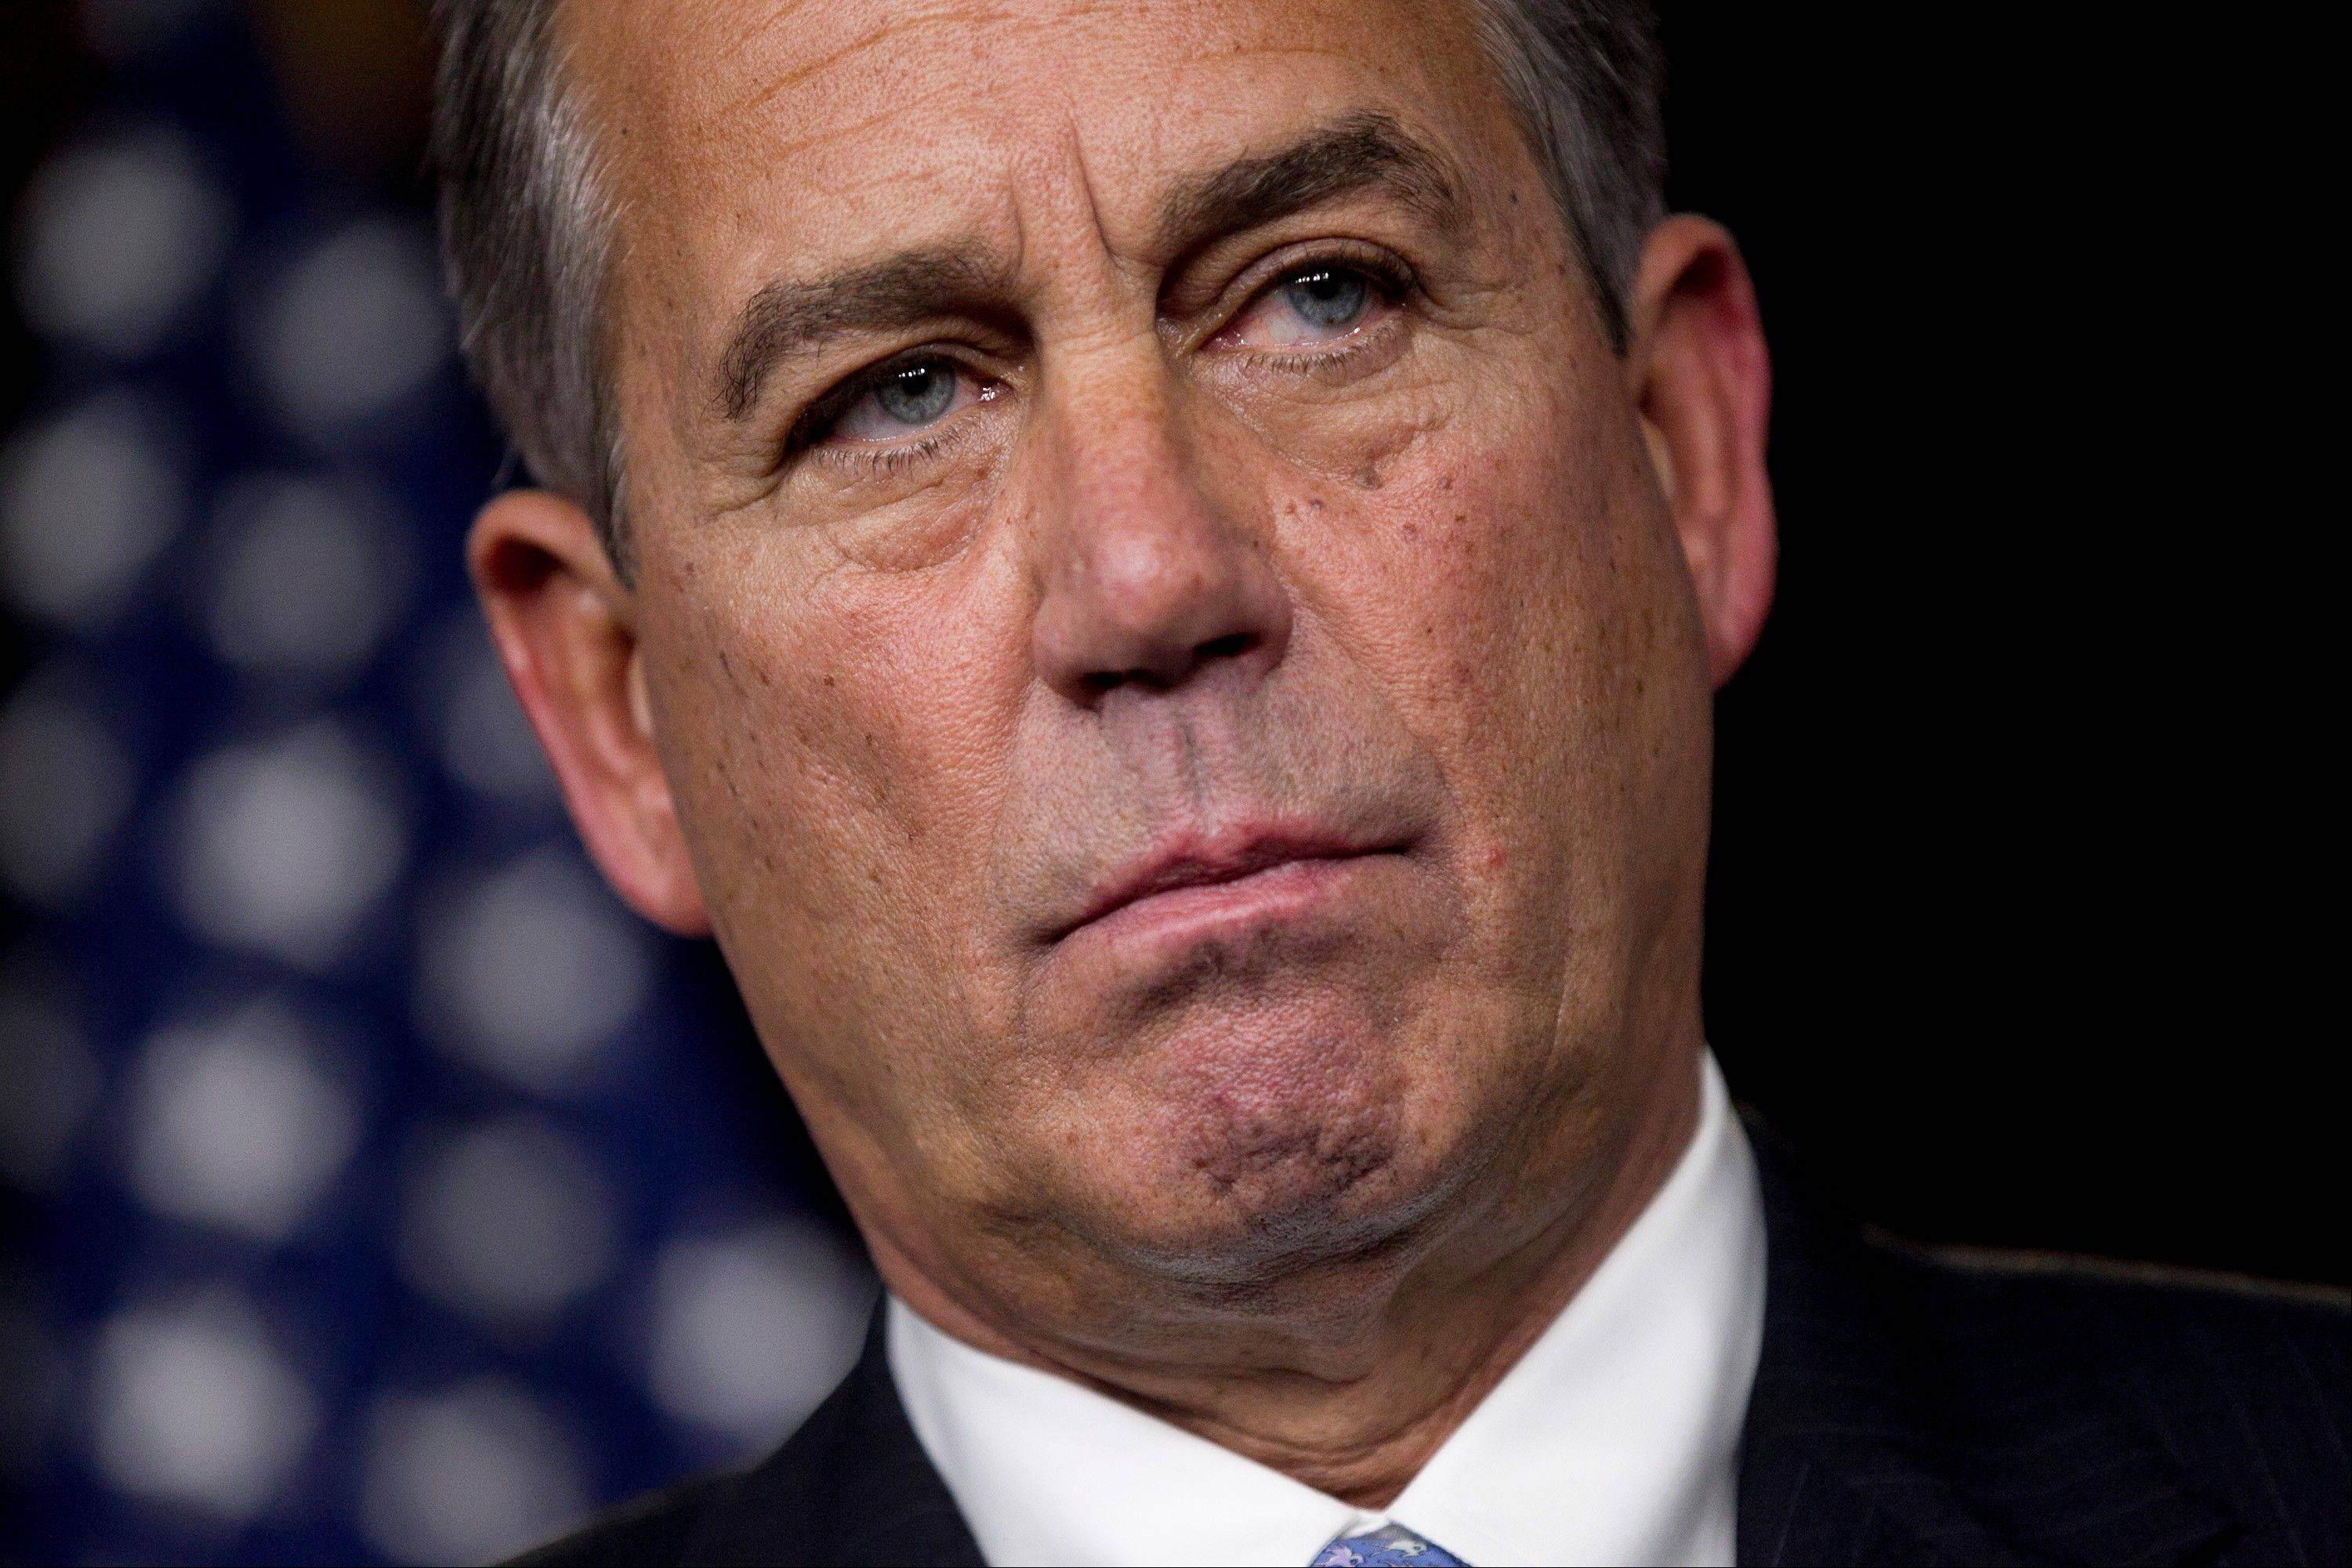 When it comes to resolving their �fiscal cliff� impasse, the dollar gap between President Barack Obama and House Speaker John Boehner is tiny in federal terms. That masks a monumental political ravine the two men must try to bridge, with most of the burden on the now beleaguered Boehner.